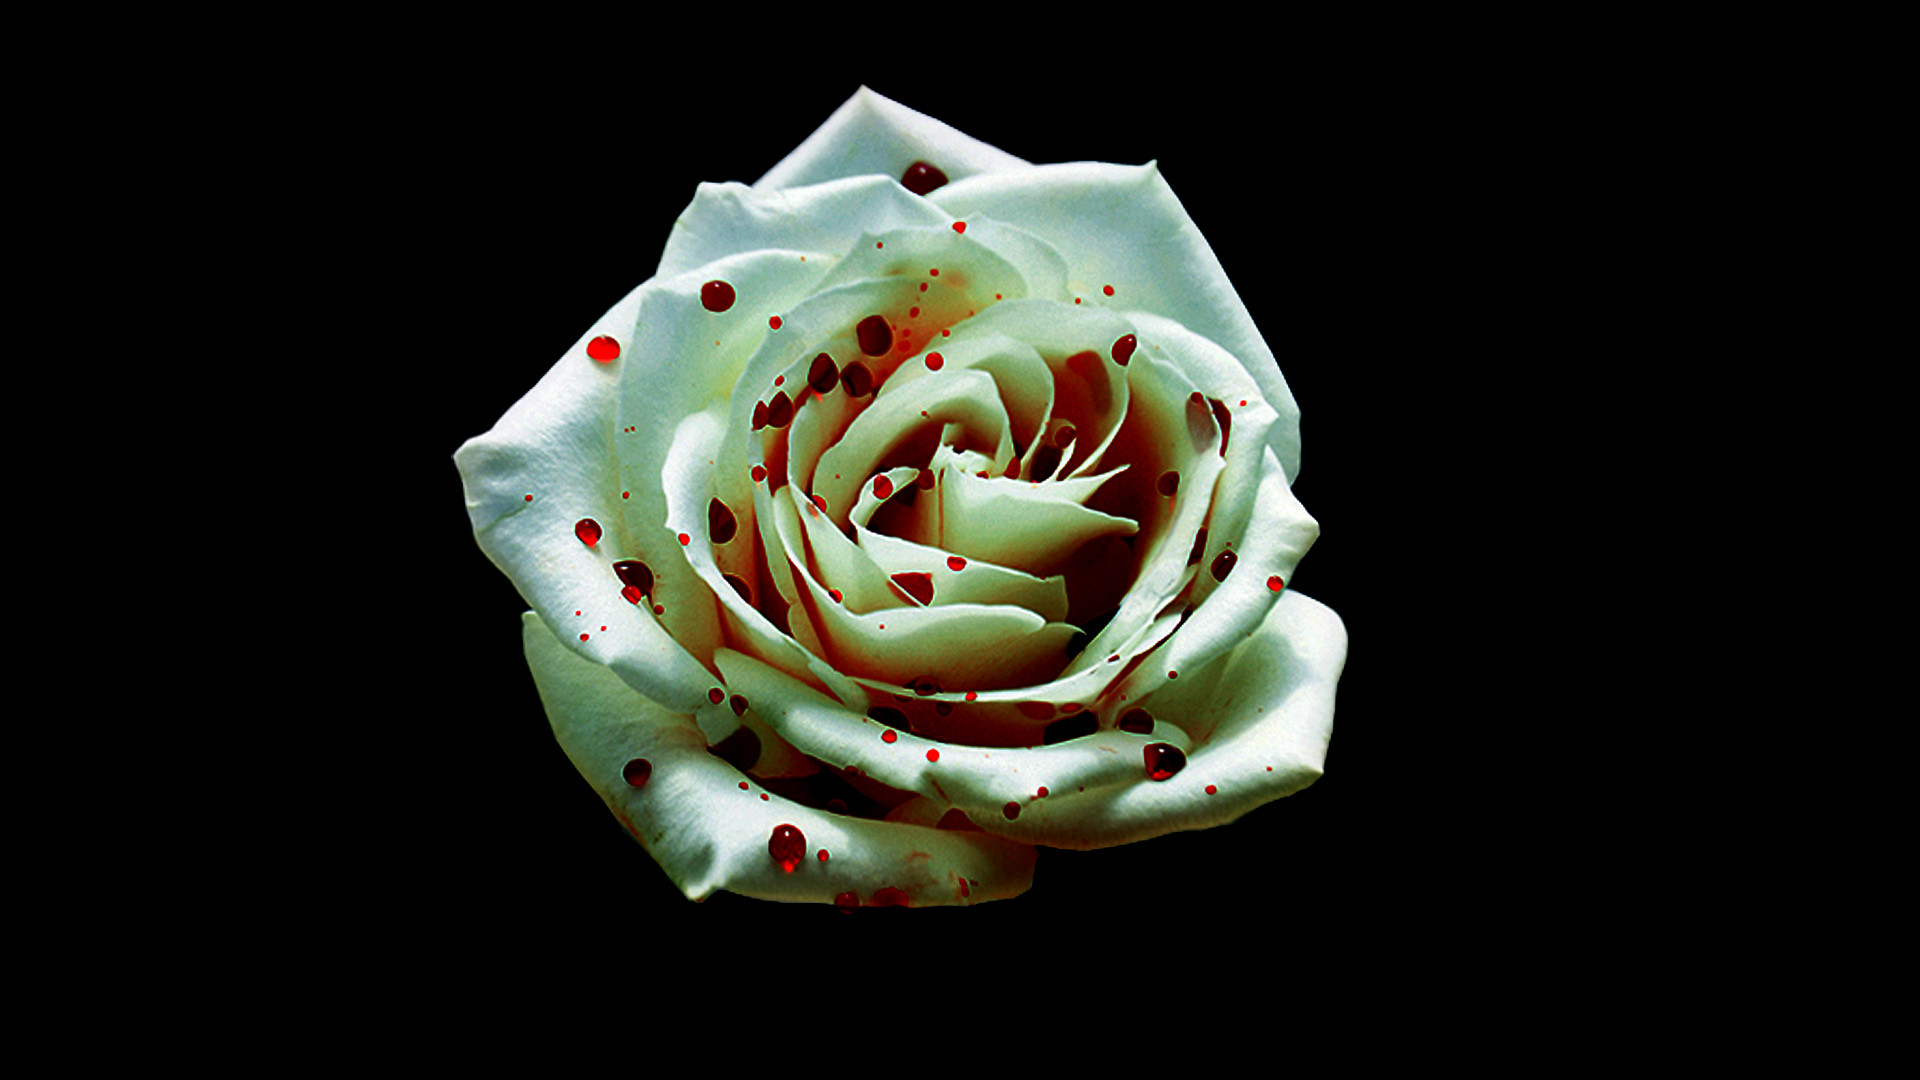 Bloody Rose Wallpaper (60+ images)